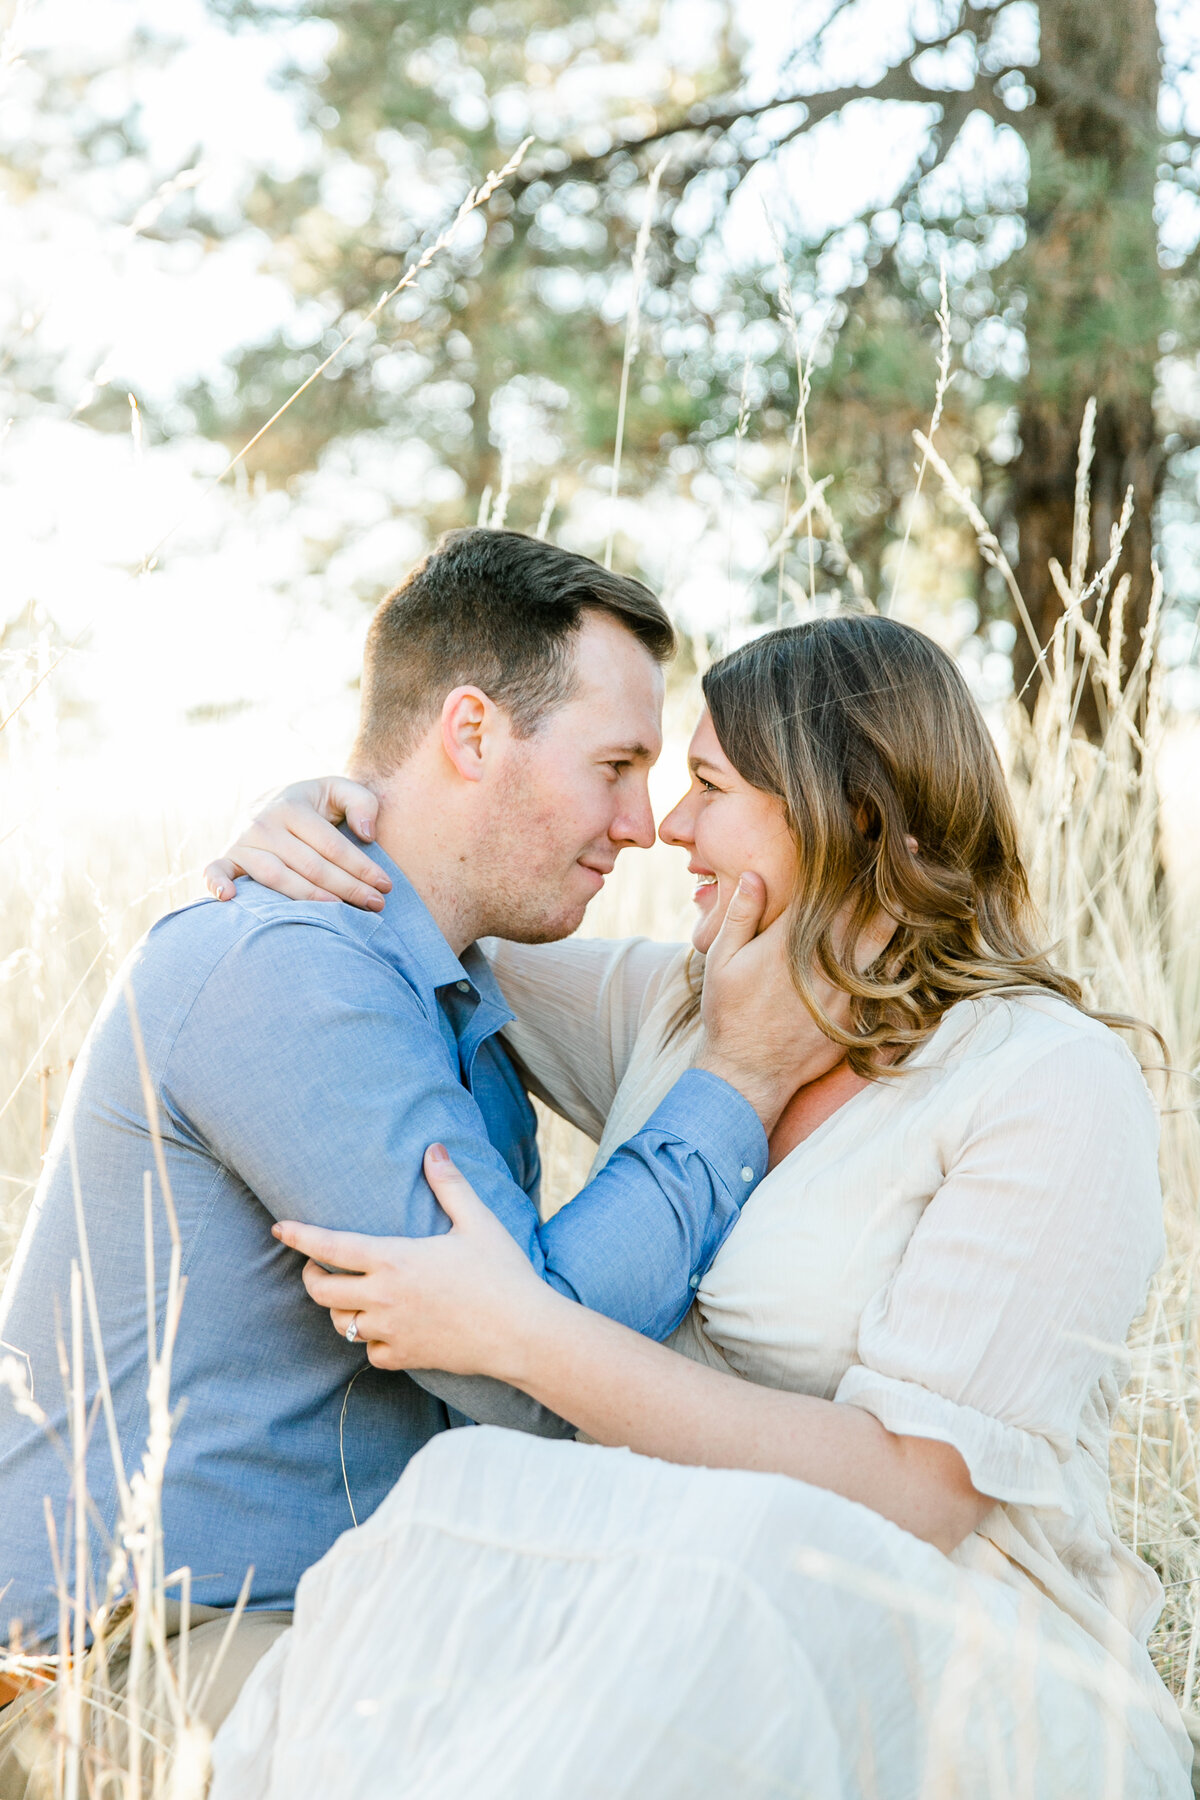 Karlie Colleen Photography - Flagstaff Arizona Engagement Photographer - Britt & Josh -160